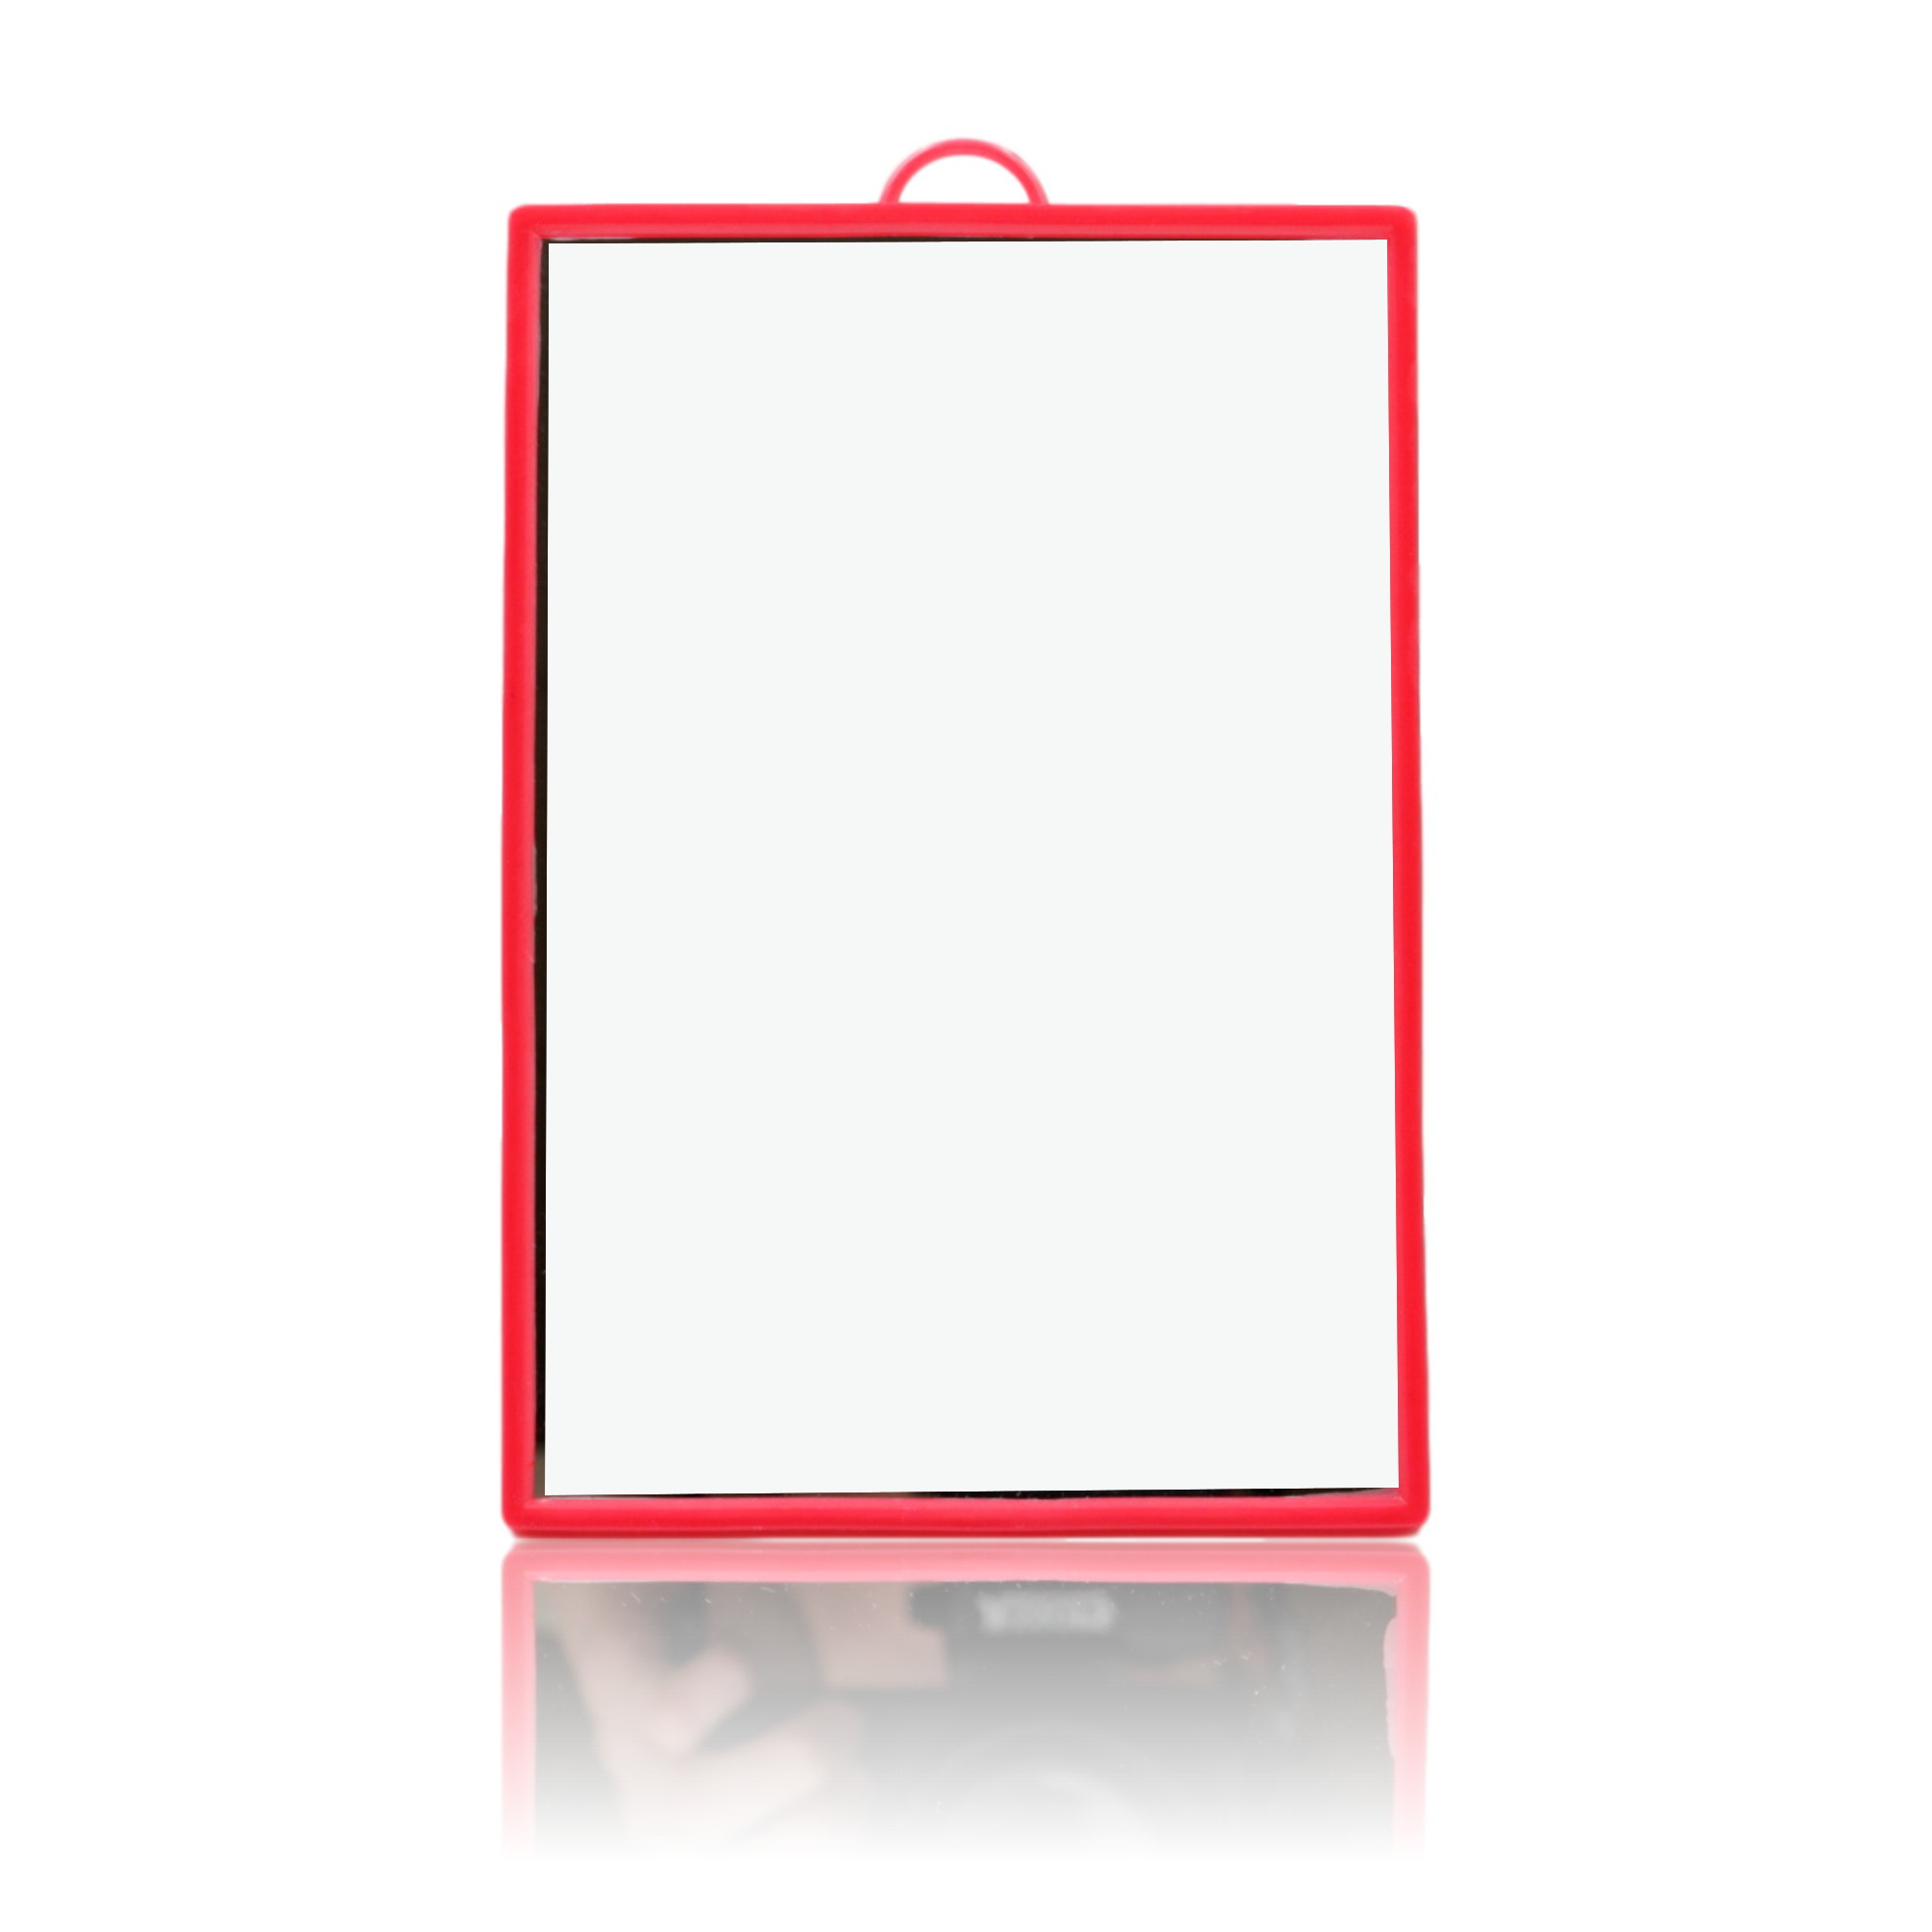 Colourful Basic & Handy Slim Hanging Wall Mirror – Red 14Cm Tall Pertaining To 2020 Slim Wall Mirrors (Gallery 16 of 20)